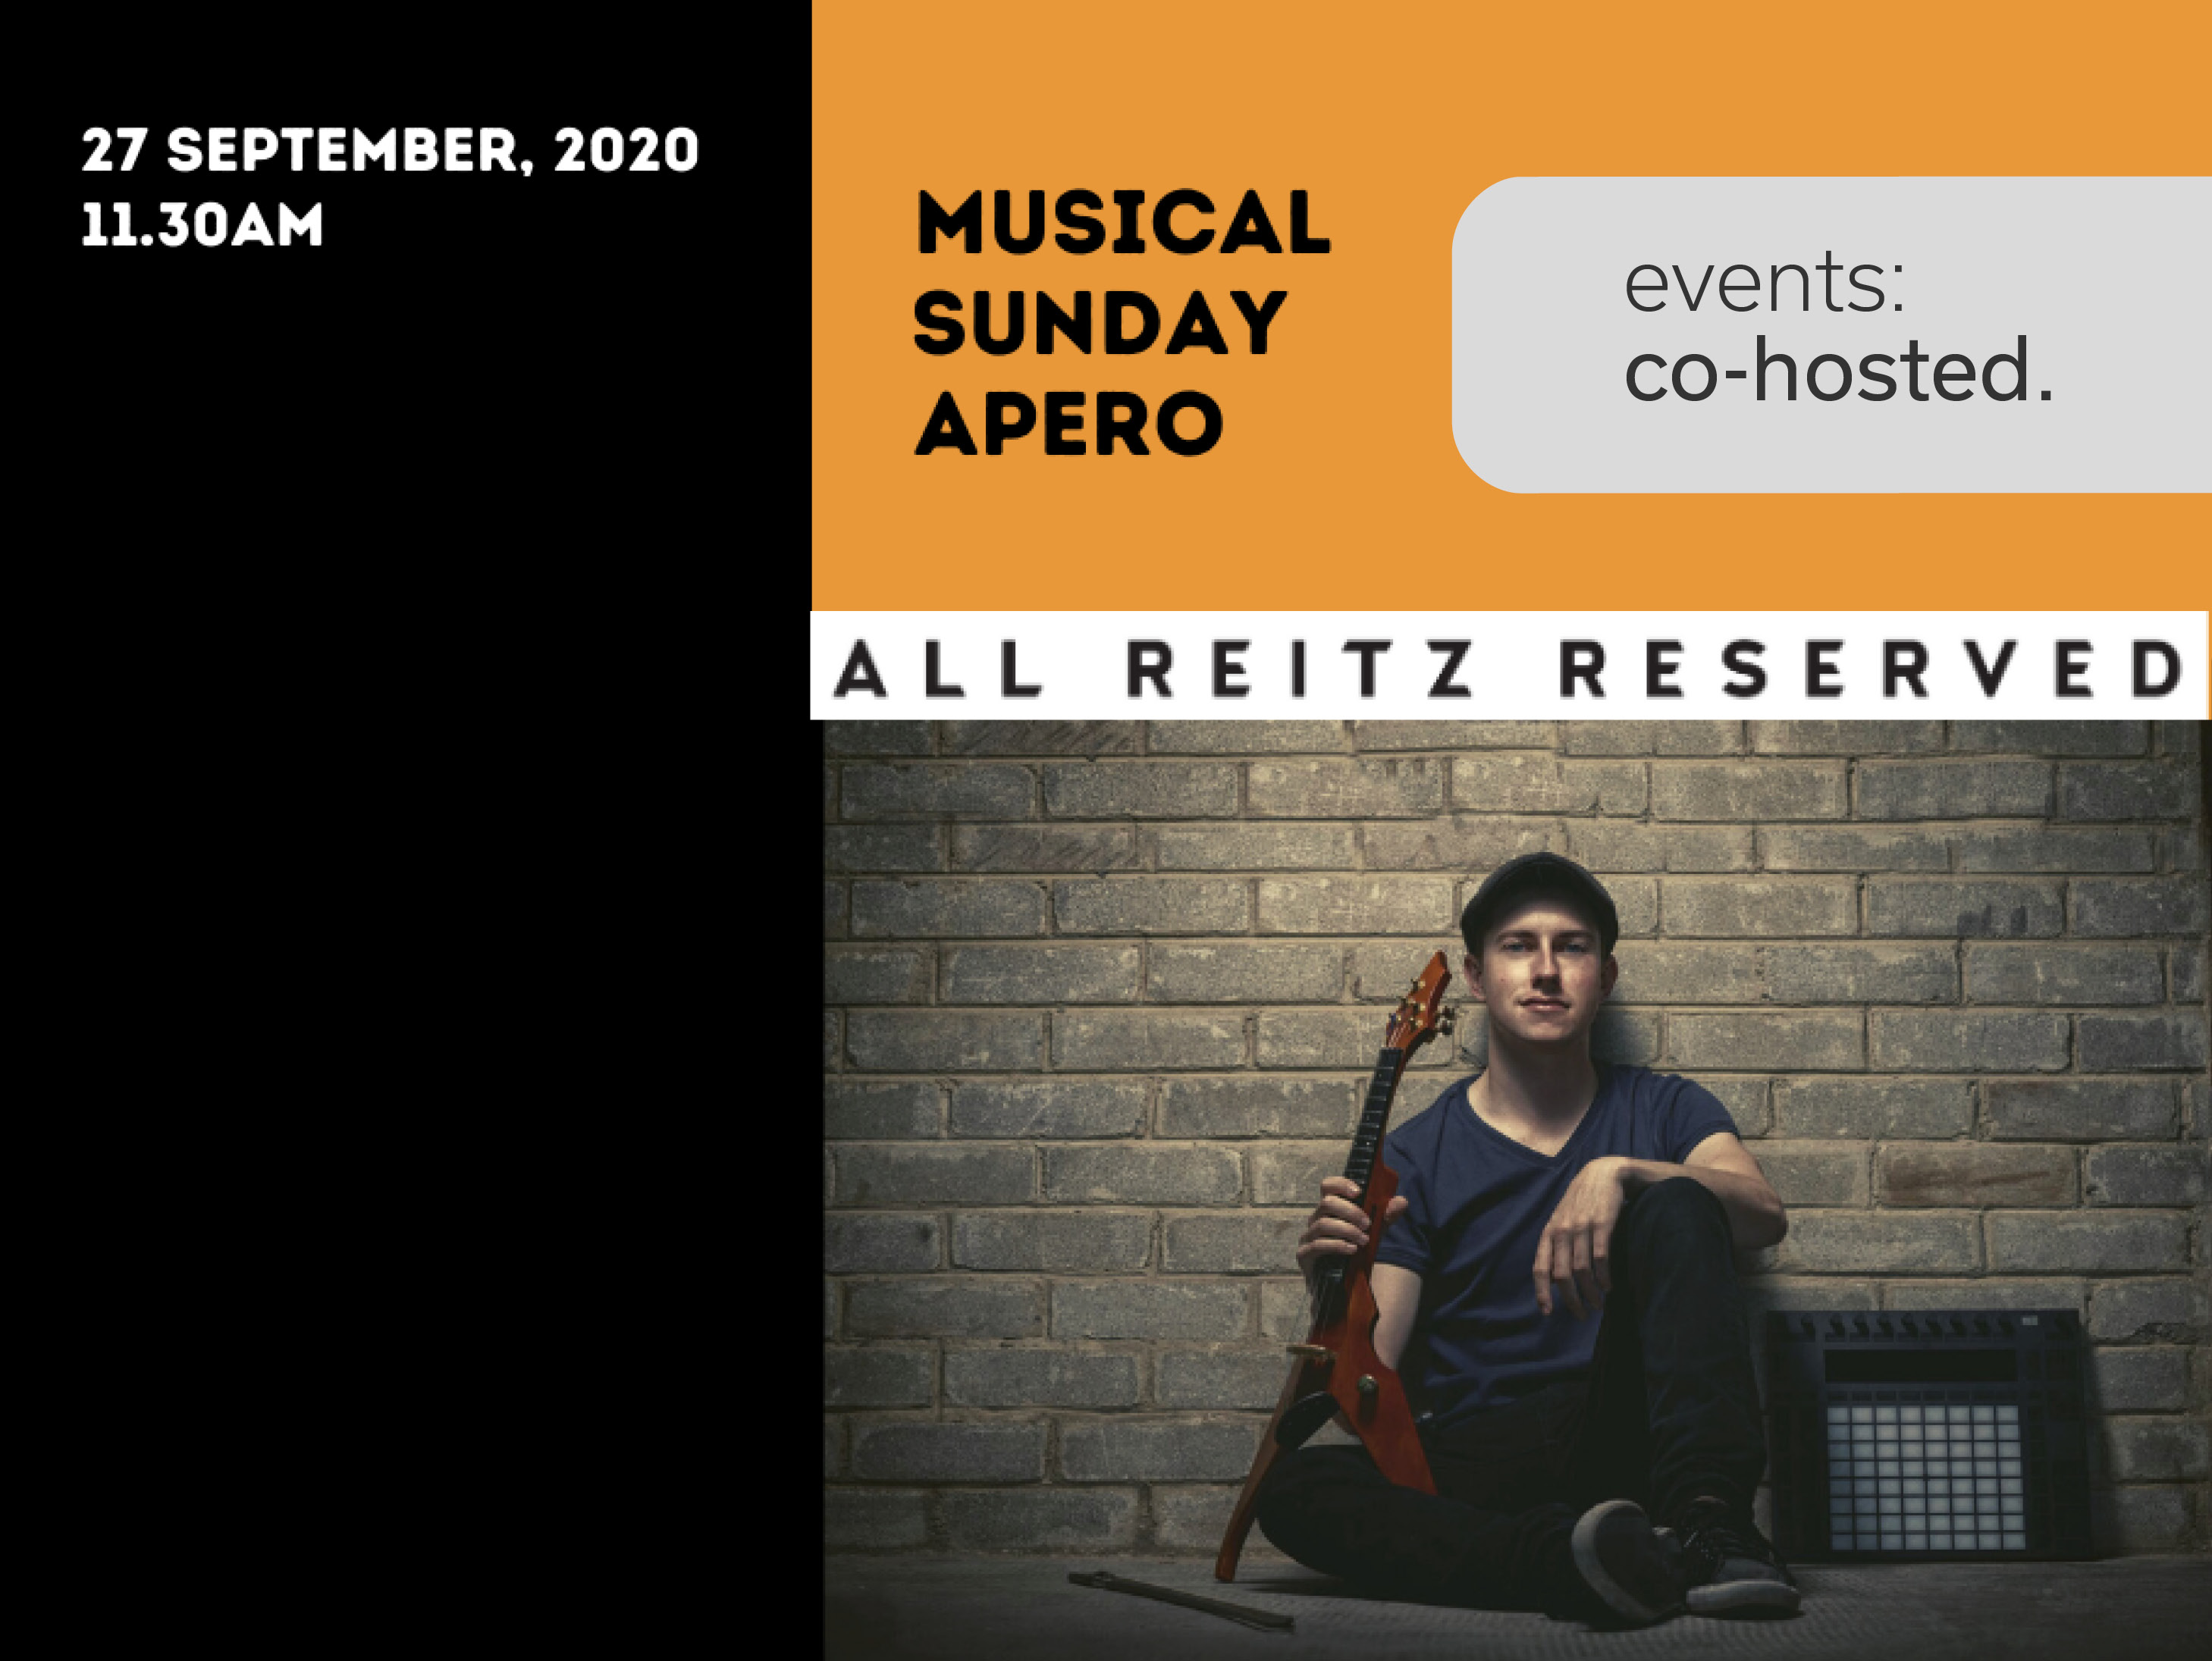 Musical Sunday Apero with All Reitz Reserved.